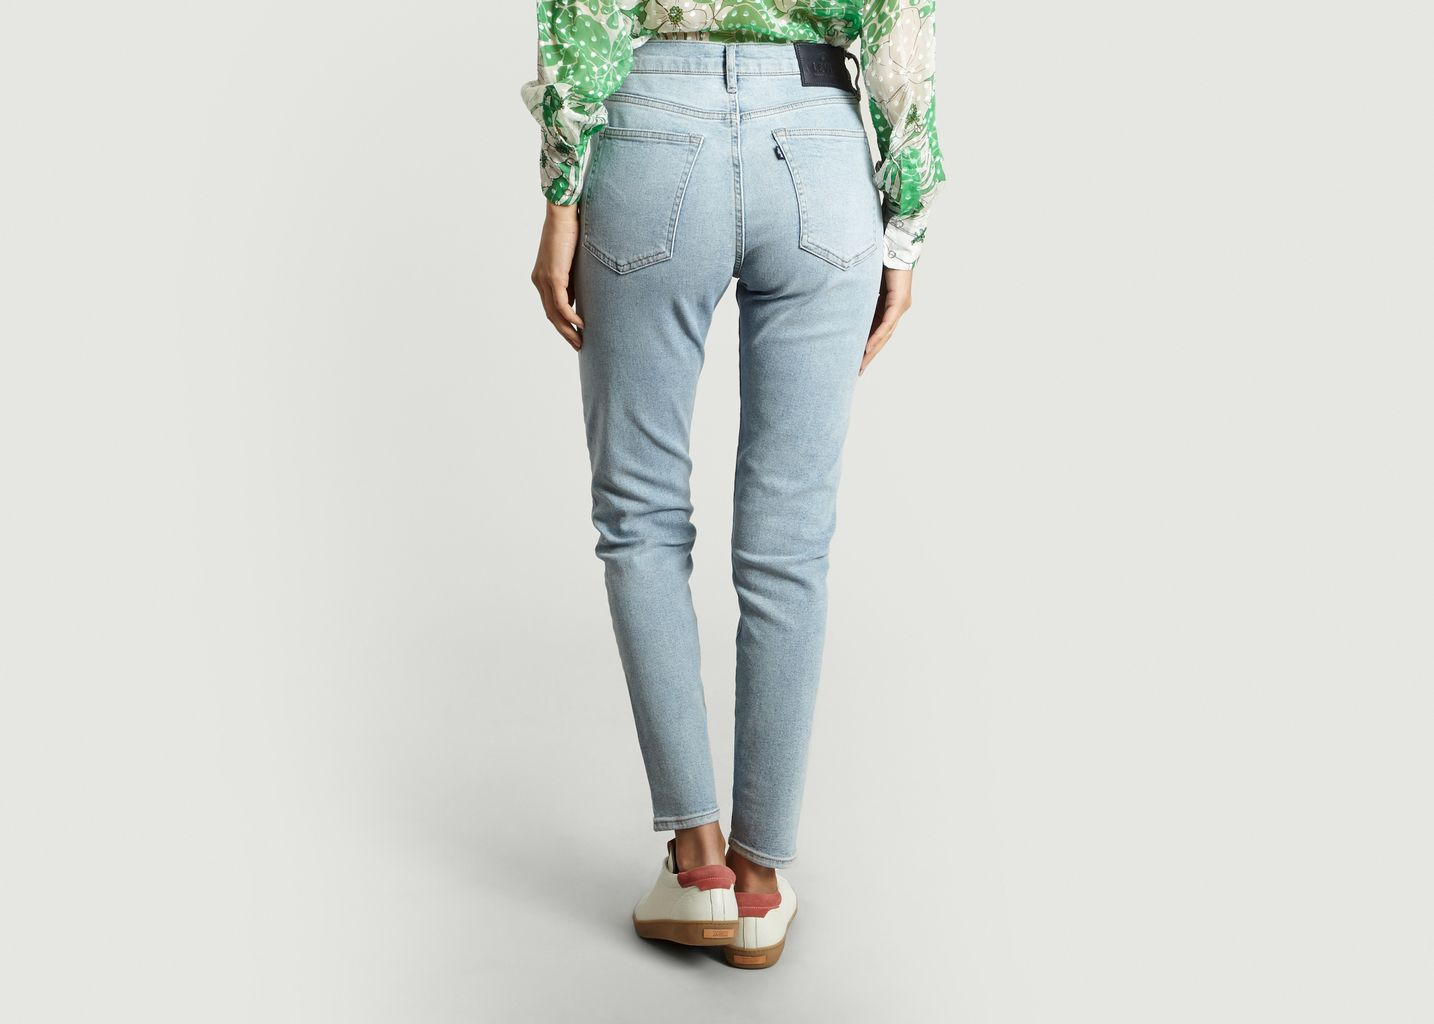 Jean Sliver Ankle Skinny - Levi's Made and Crafted